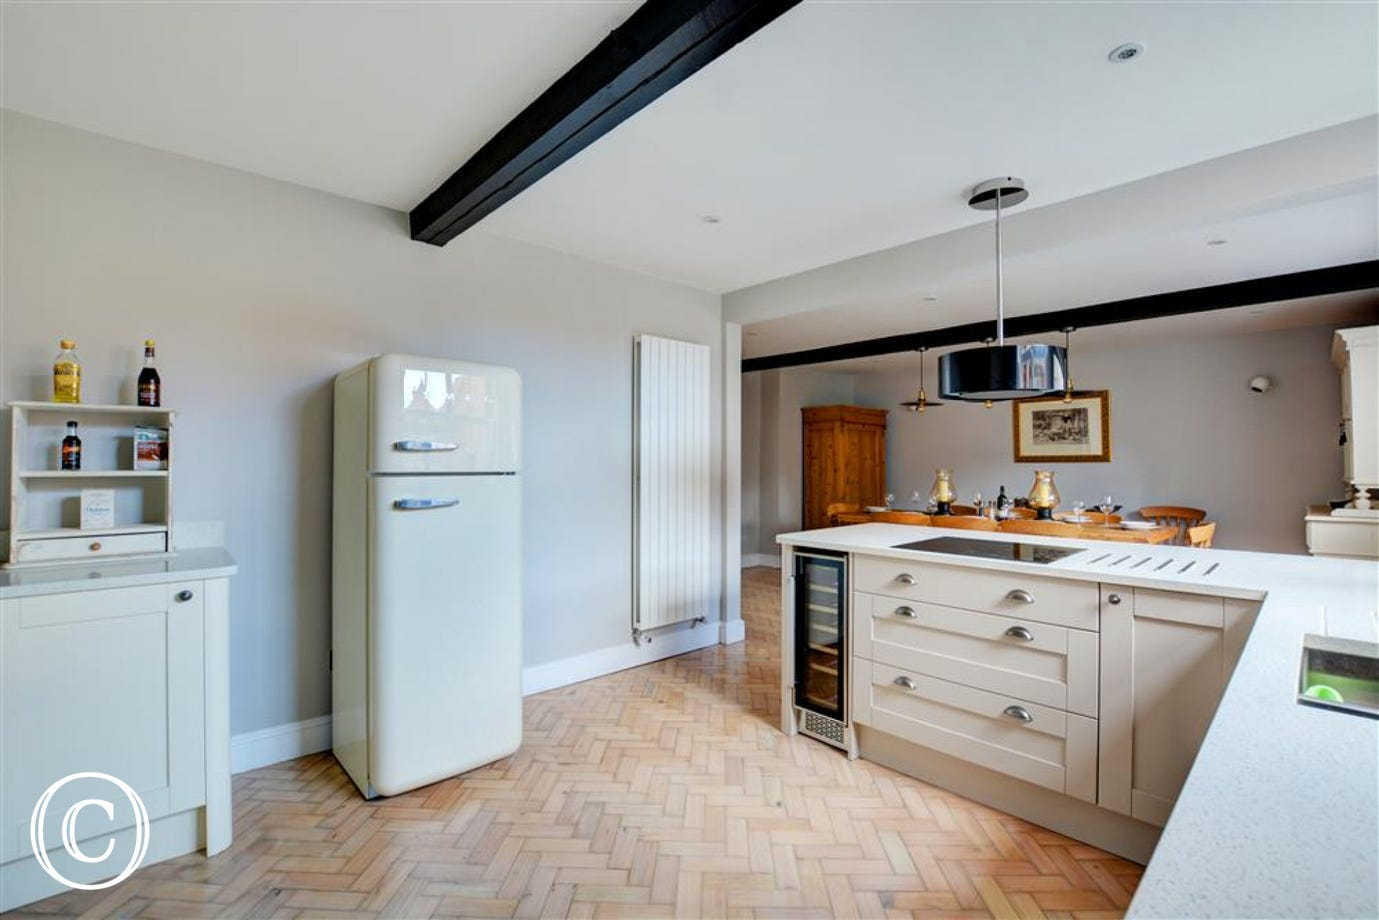 The kitchen is equipped with every thing needed for your self catering break